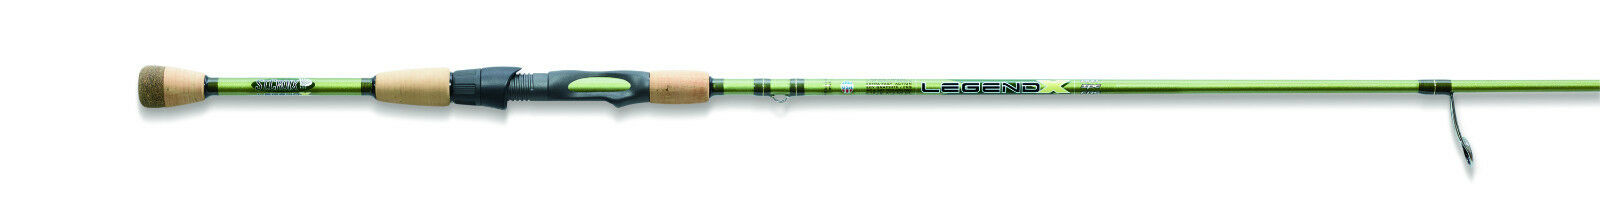 St. Croix Legend X Spinning, Fishing Rod (Choose your Model)